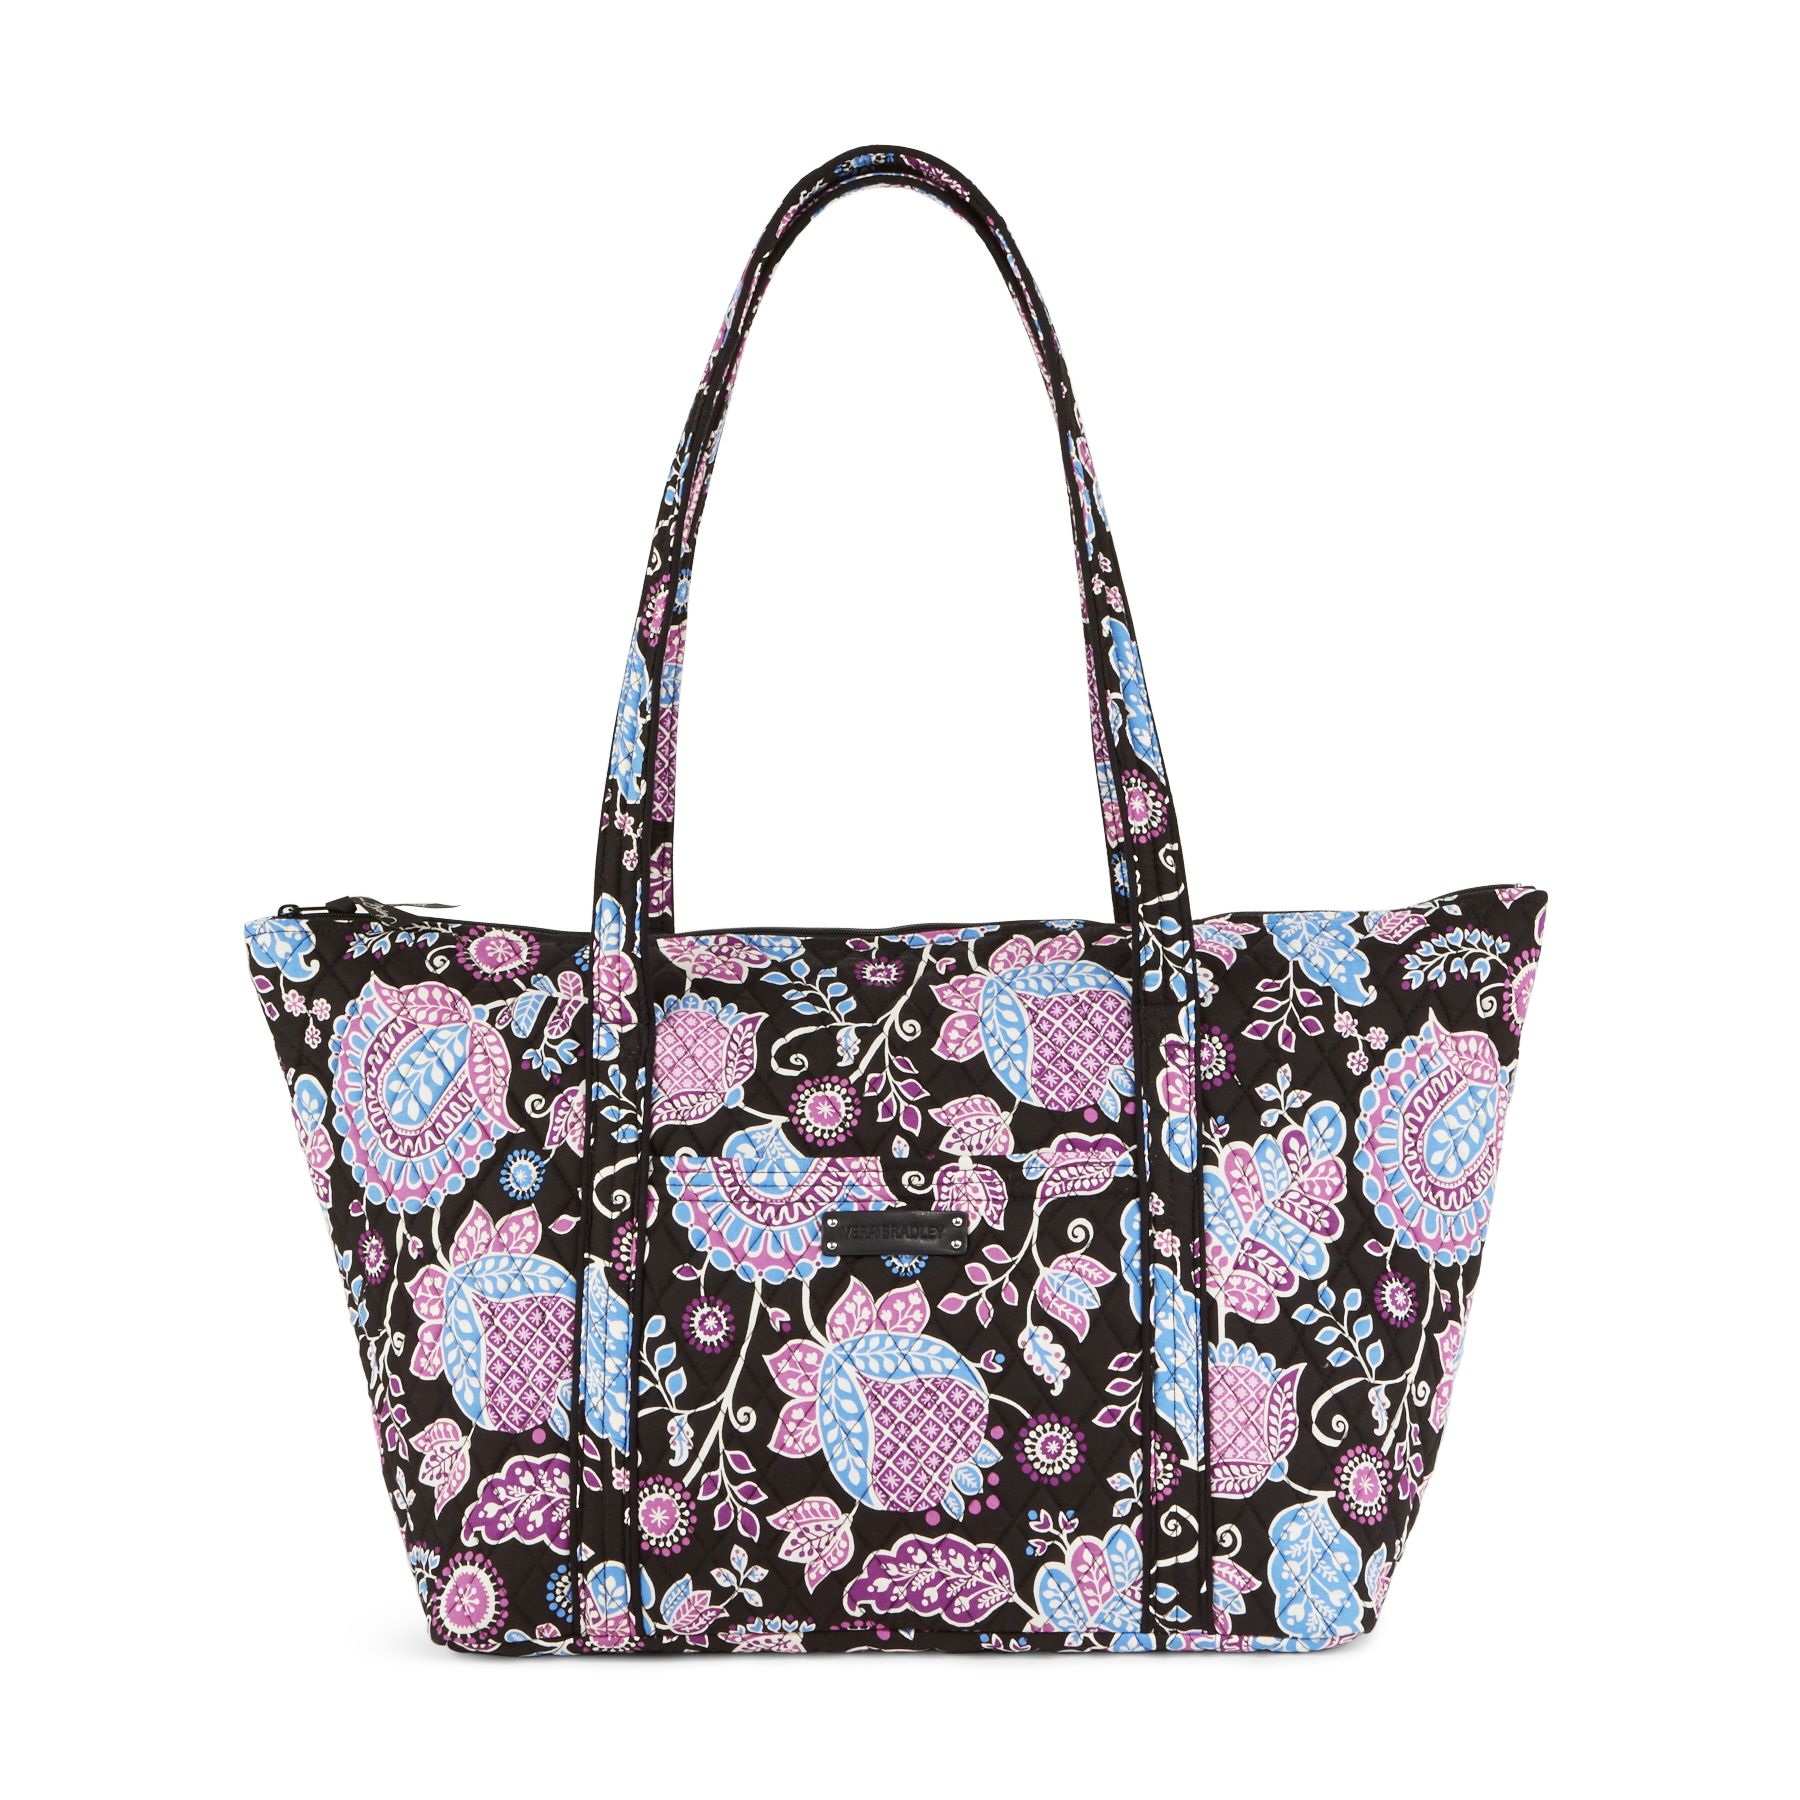 UPC 886003339466 product image for Vera Bradley Miller Travel Bag in Alpine  Floral   upcitemdb. a8d27dc111